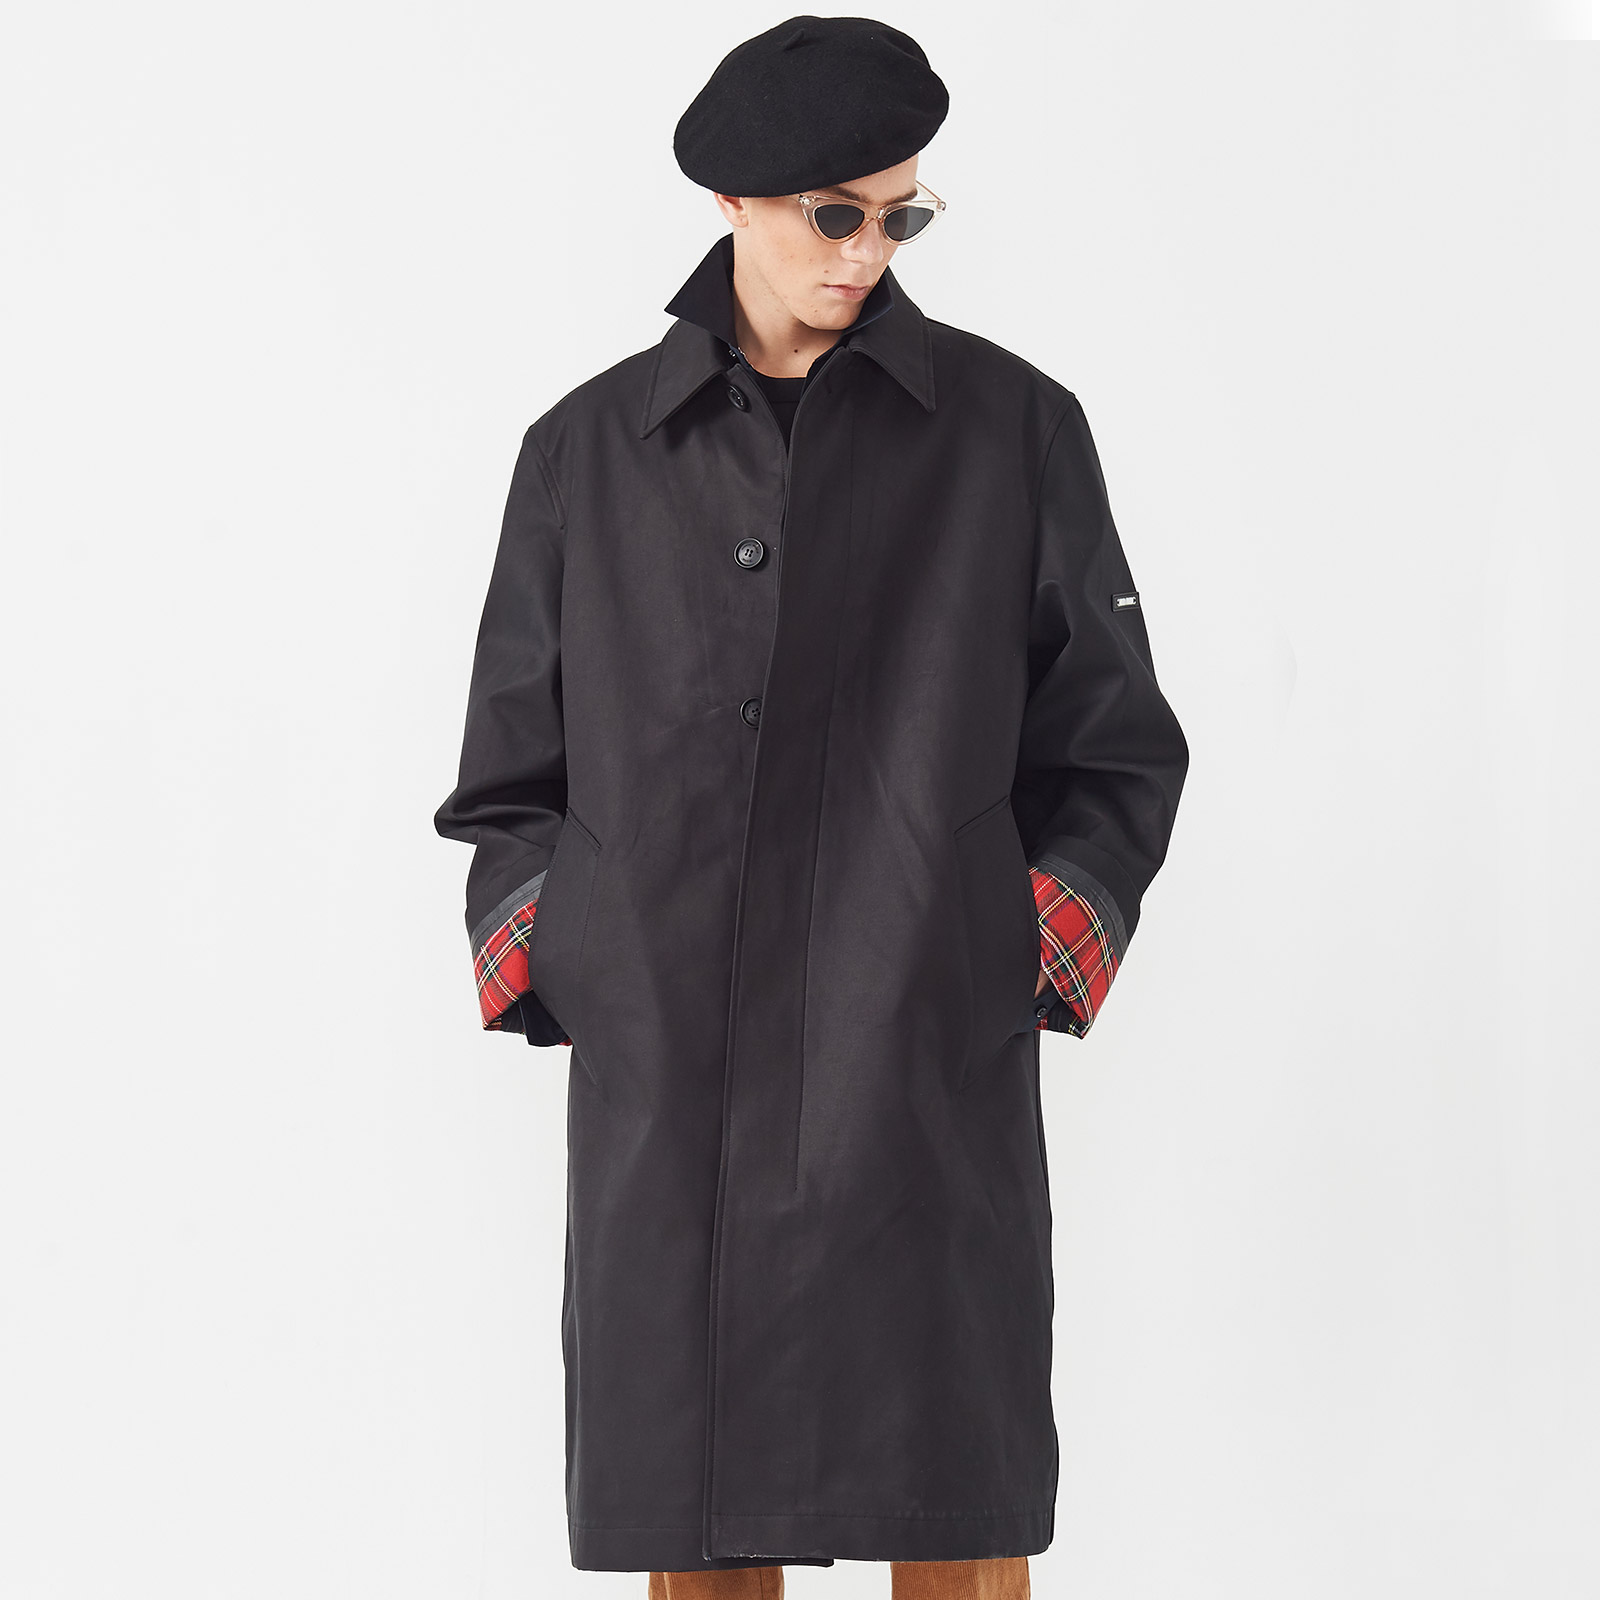 [엠엠아이씨]OVERSIZED SEAM SEALED COAT - BLACK-[JK-704-BK]